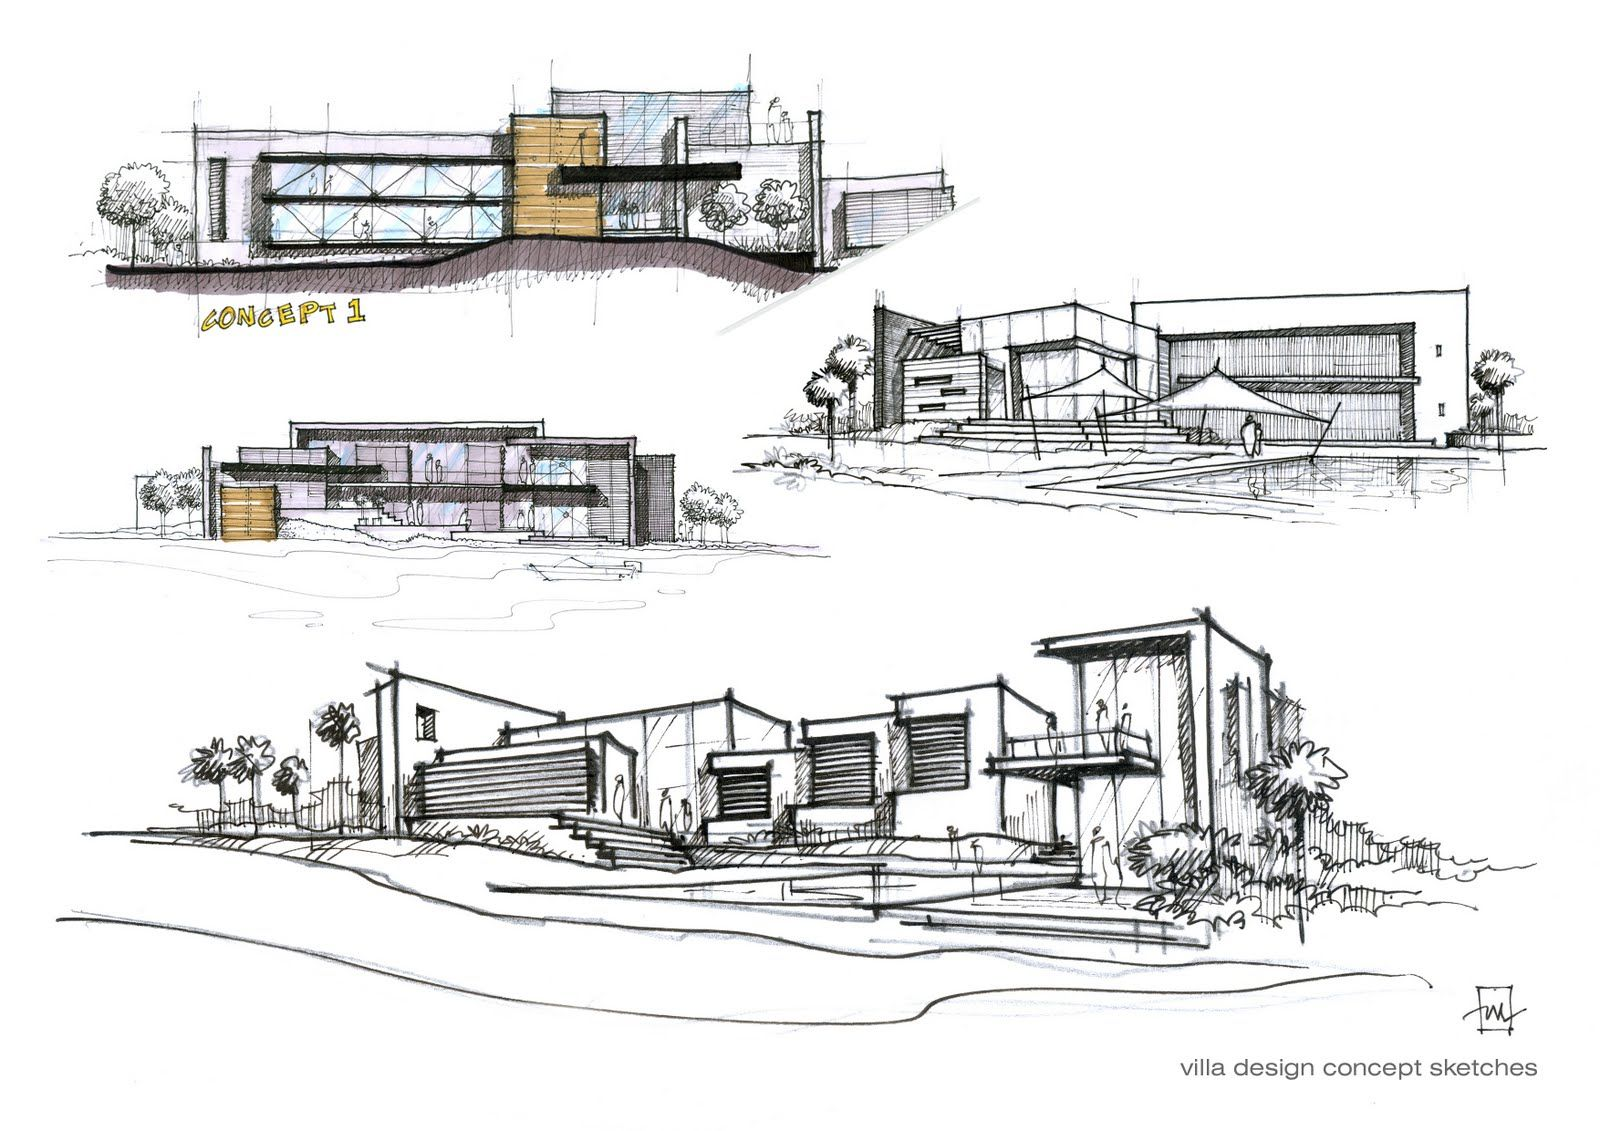 Villa design concept sketches atelier2 sketching Concept buildings